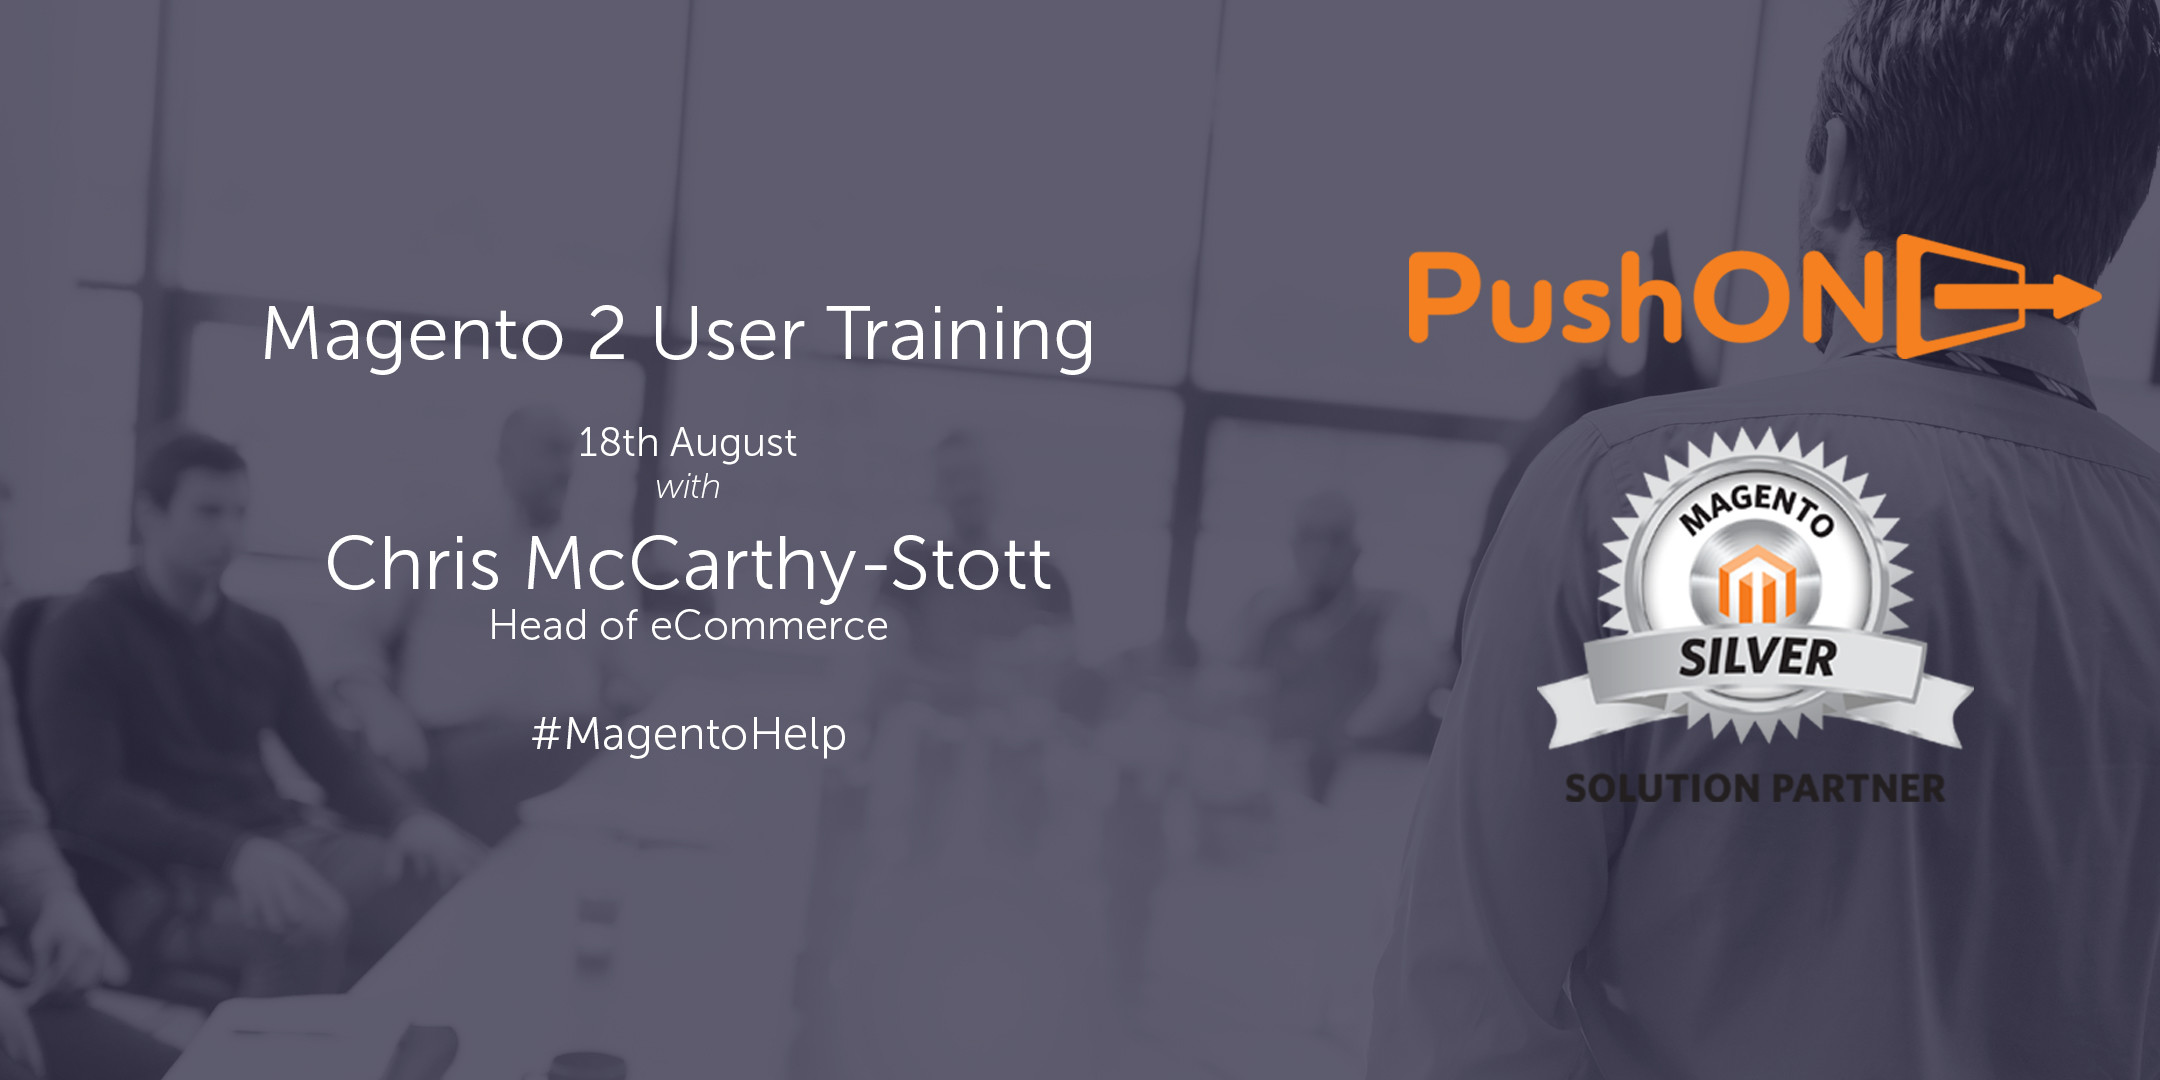 Magento User Training Image